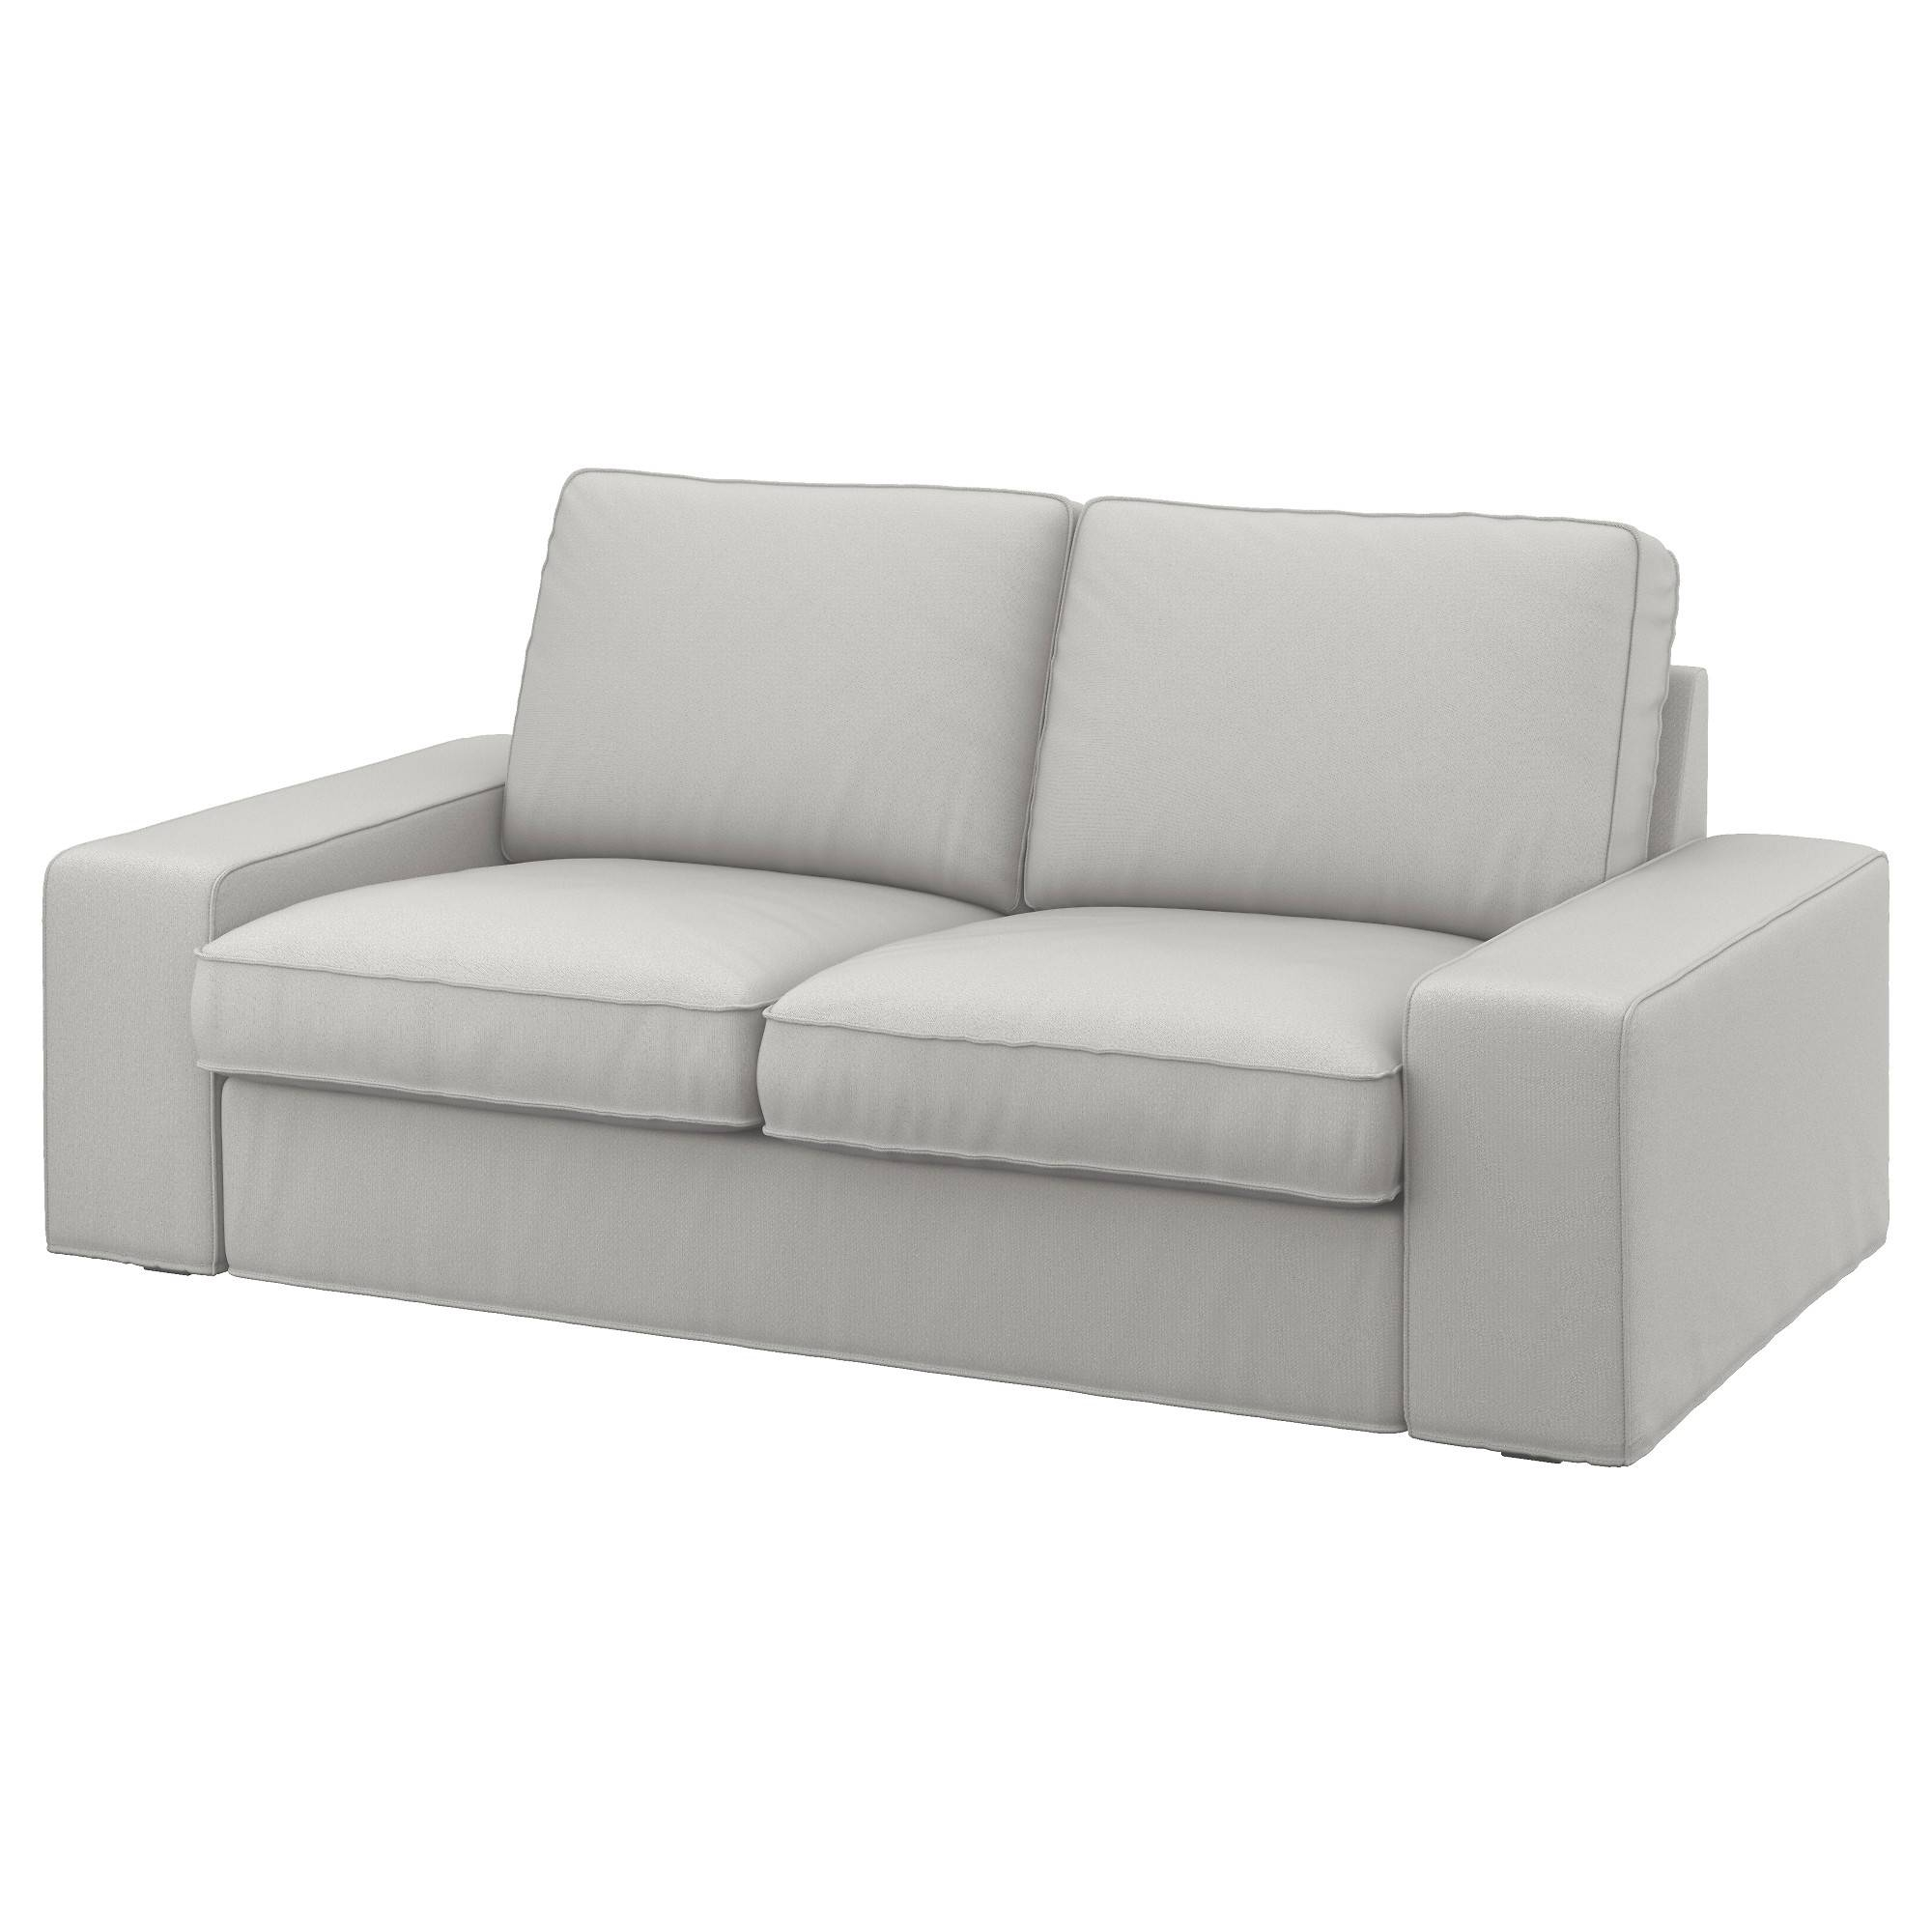 Kivik Two-Seat Sofa Ramna Light Grey - Ikea intended for Ikea Two Seater Sofas (Image 14 of 30)